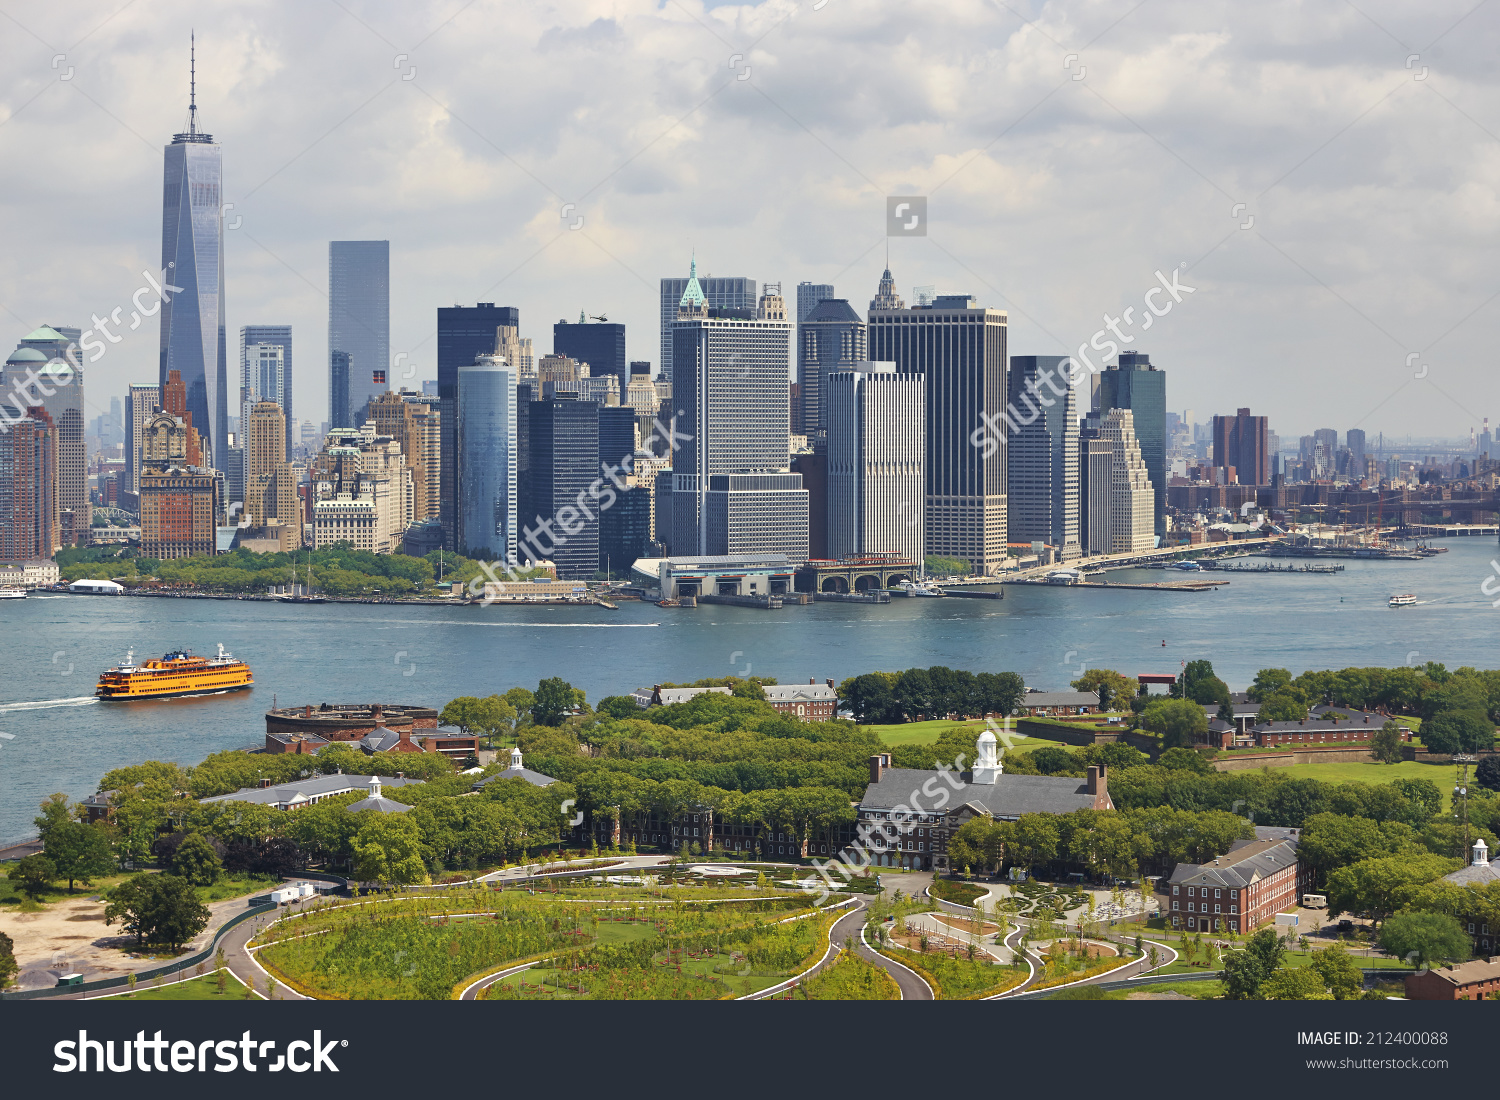 Aerial View Manhattan Governors Island New Stock Photo 212400088.